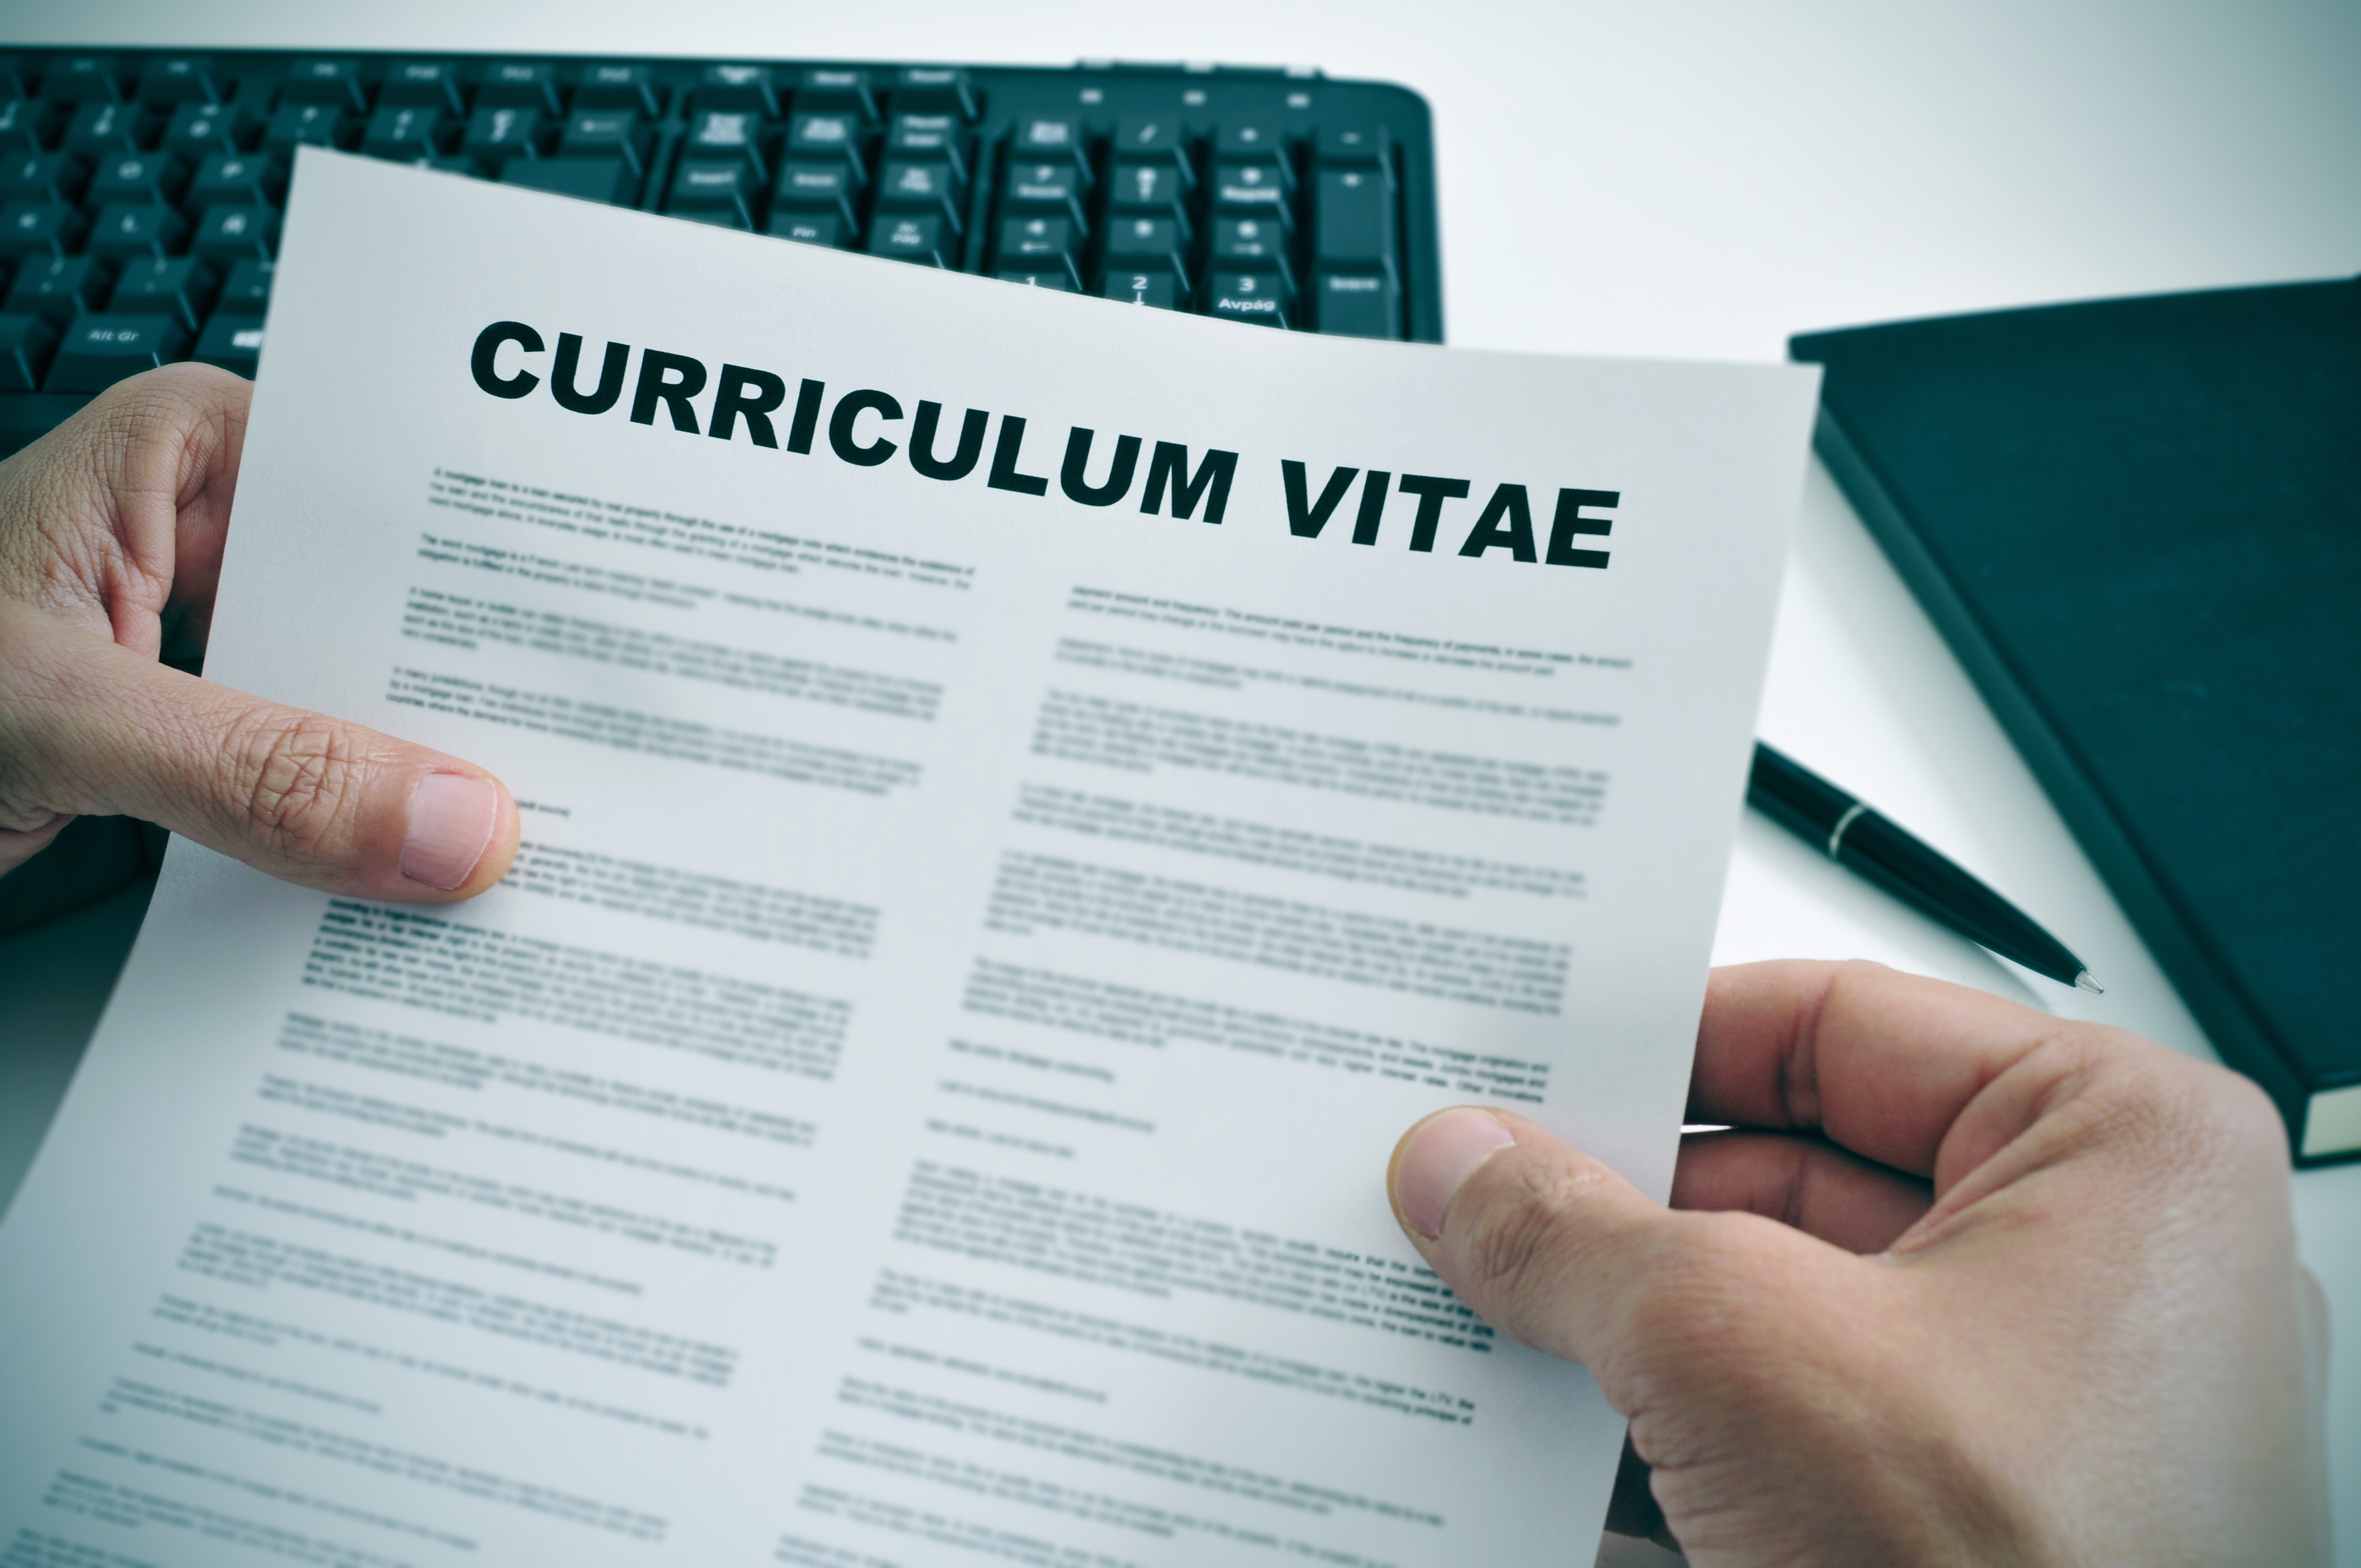 Curriculum Vitae of the CV